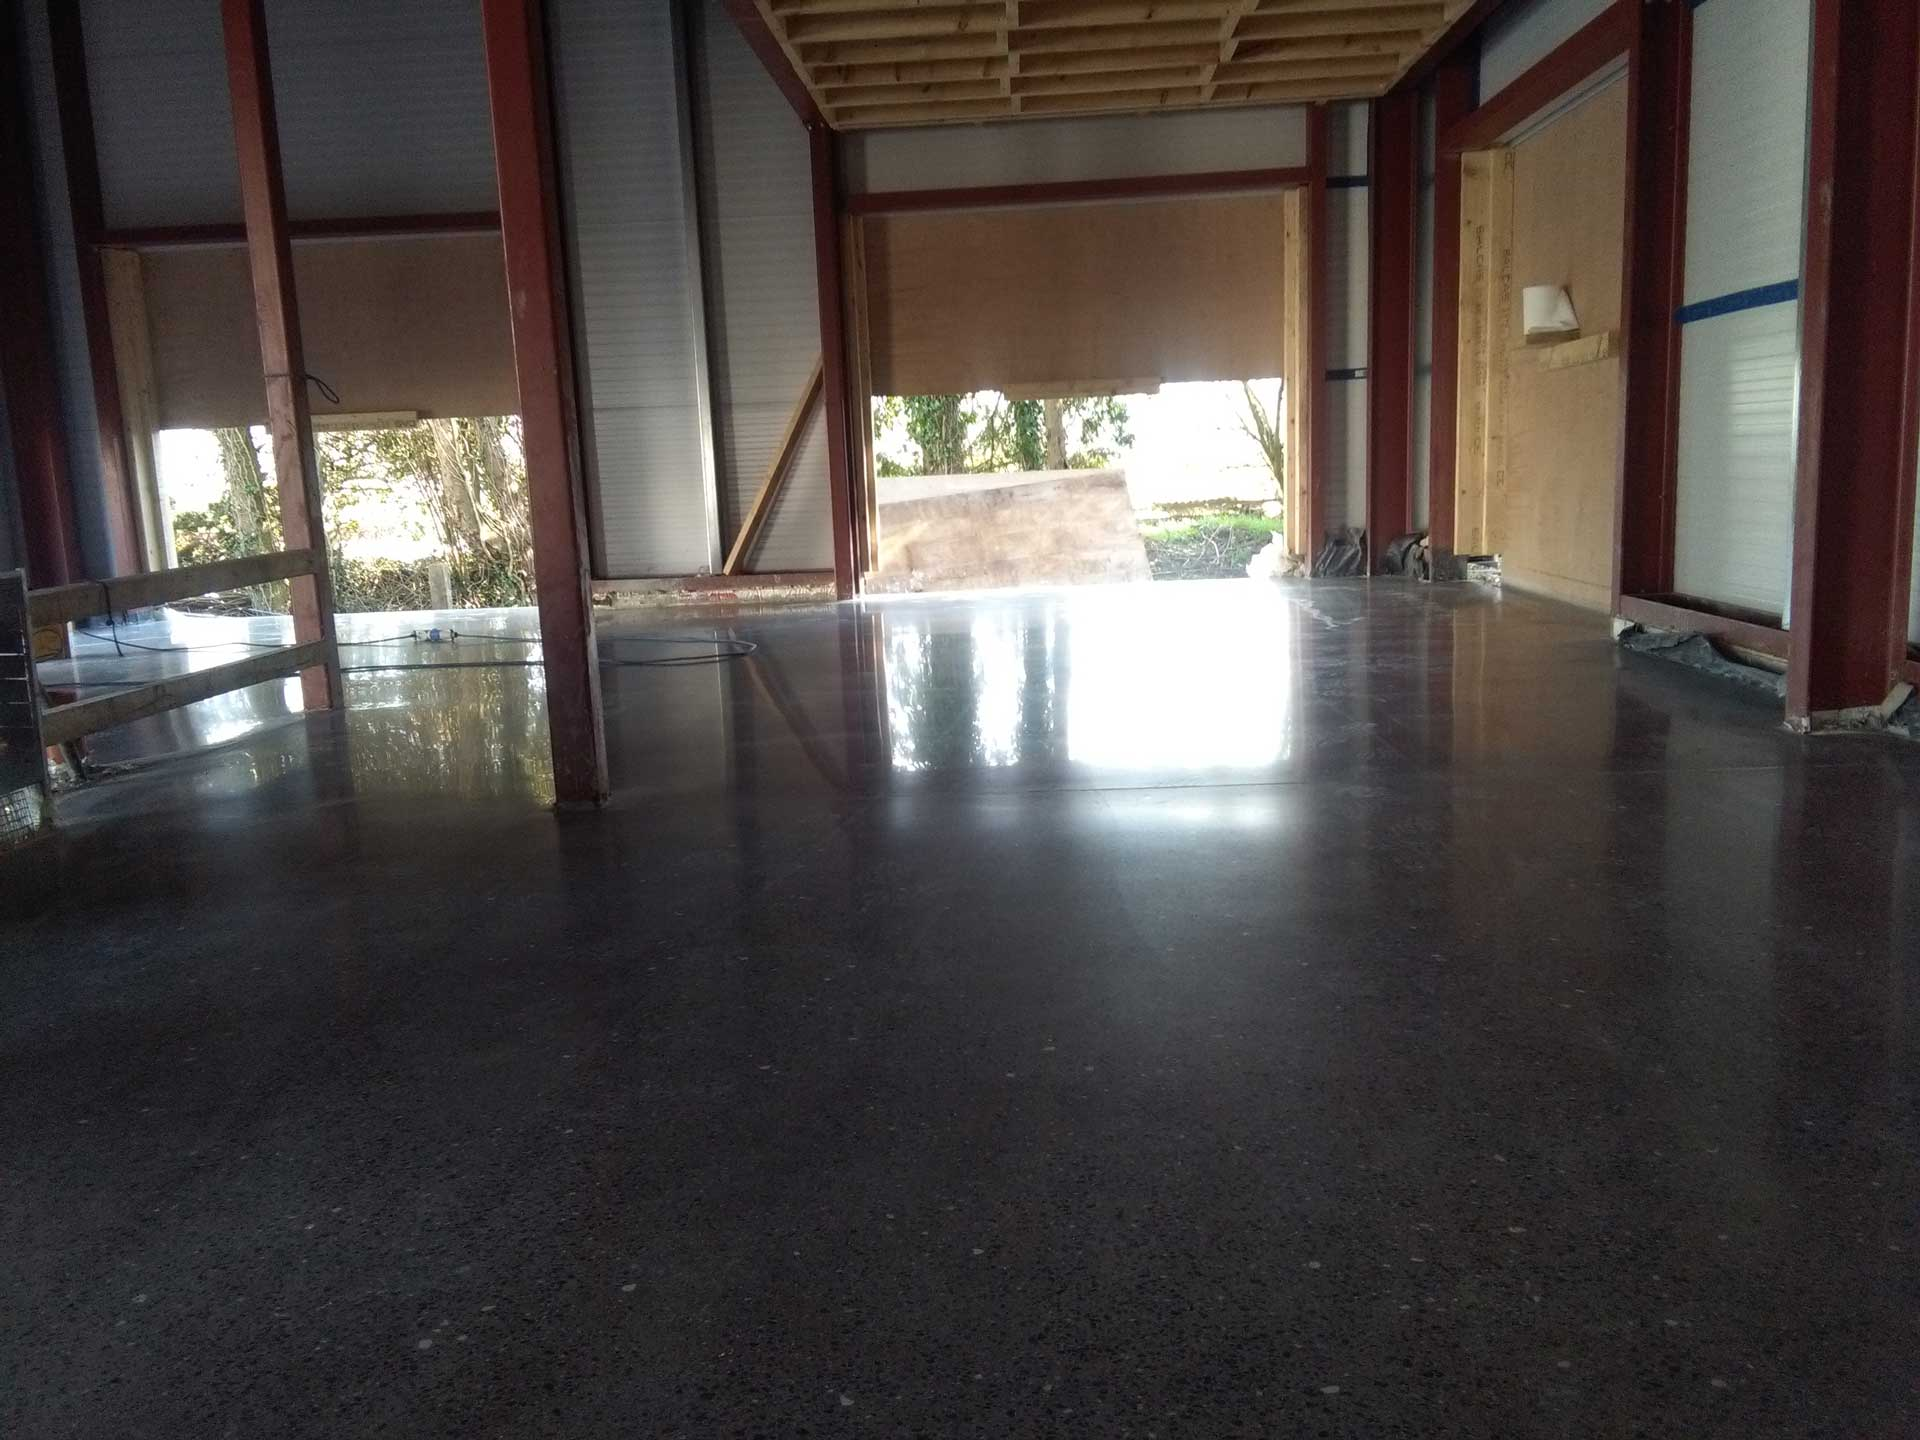 Polished Concrete Floor industrial interior